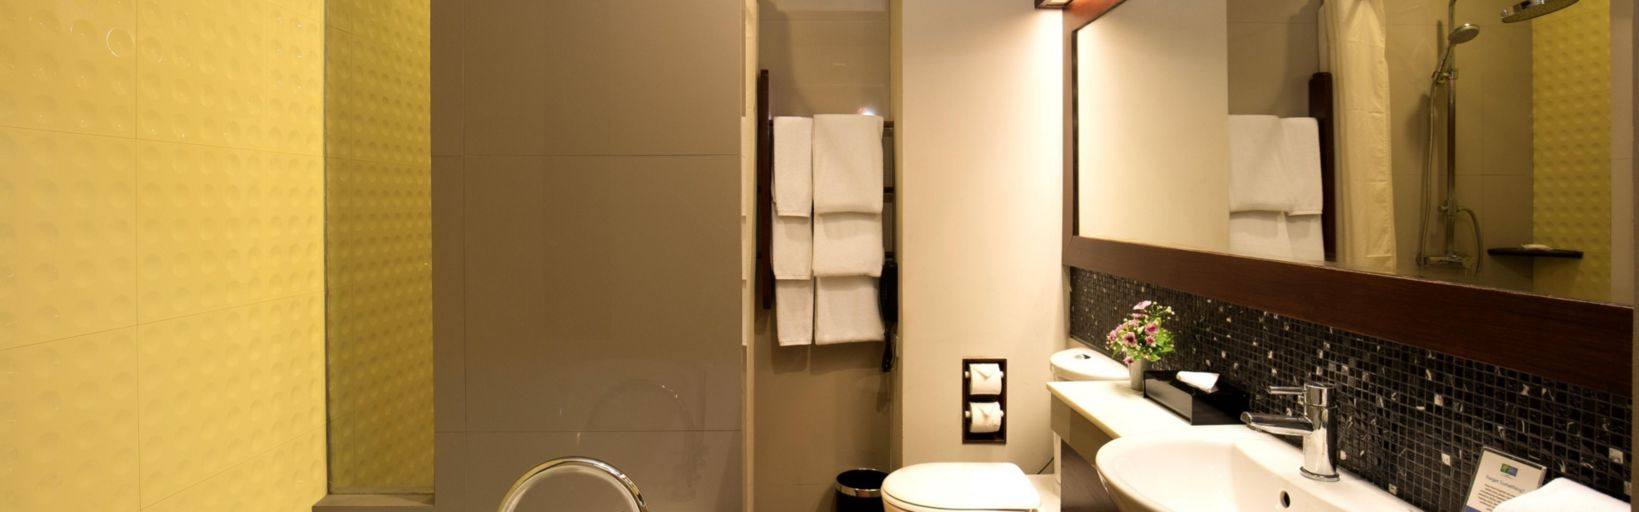 holiday-inn-resort-krabi-5069189647-16×5